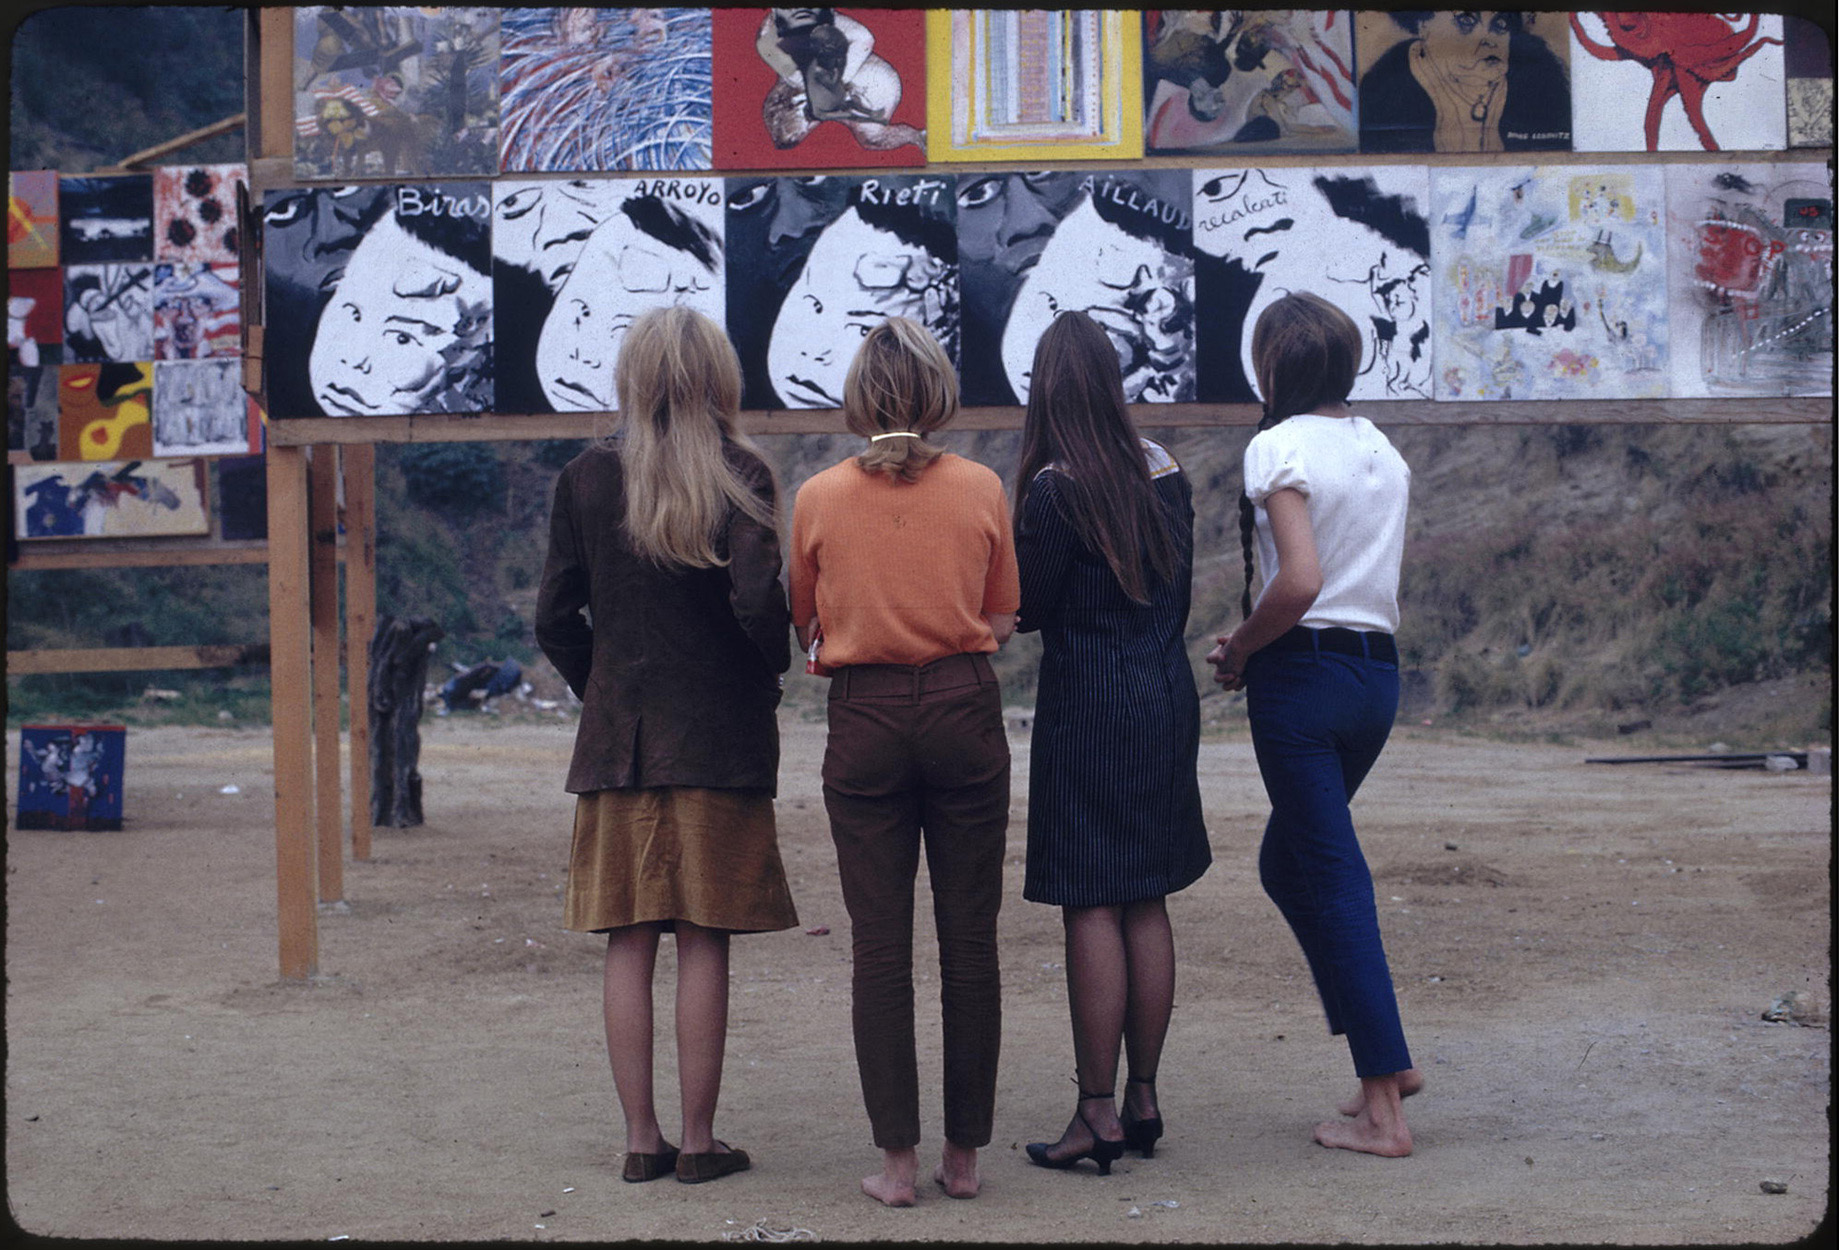 Four women looking at art work at the <i>The Artists' Tower of Protest</i>, 1966. Charles Brittin Archive, The Getty Research Institute, Los Angeles, (2005.M.11). Photo: Charles Brittin. © J. Paul Getty Trust.